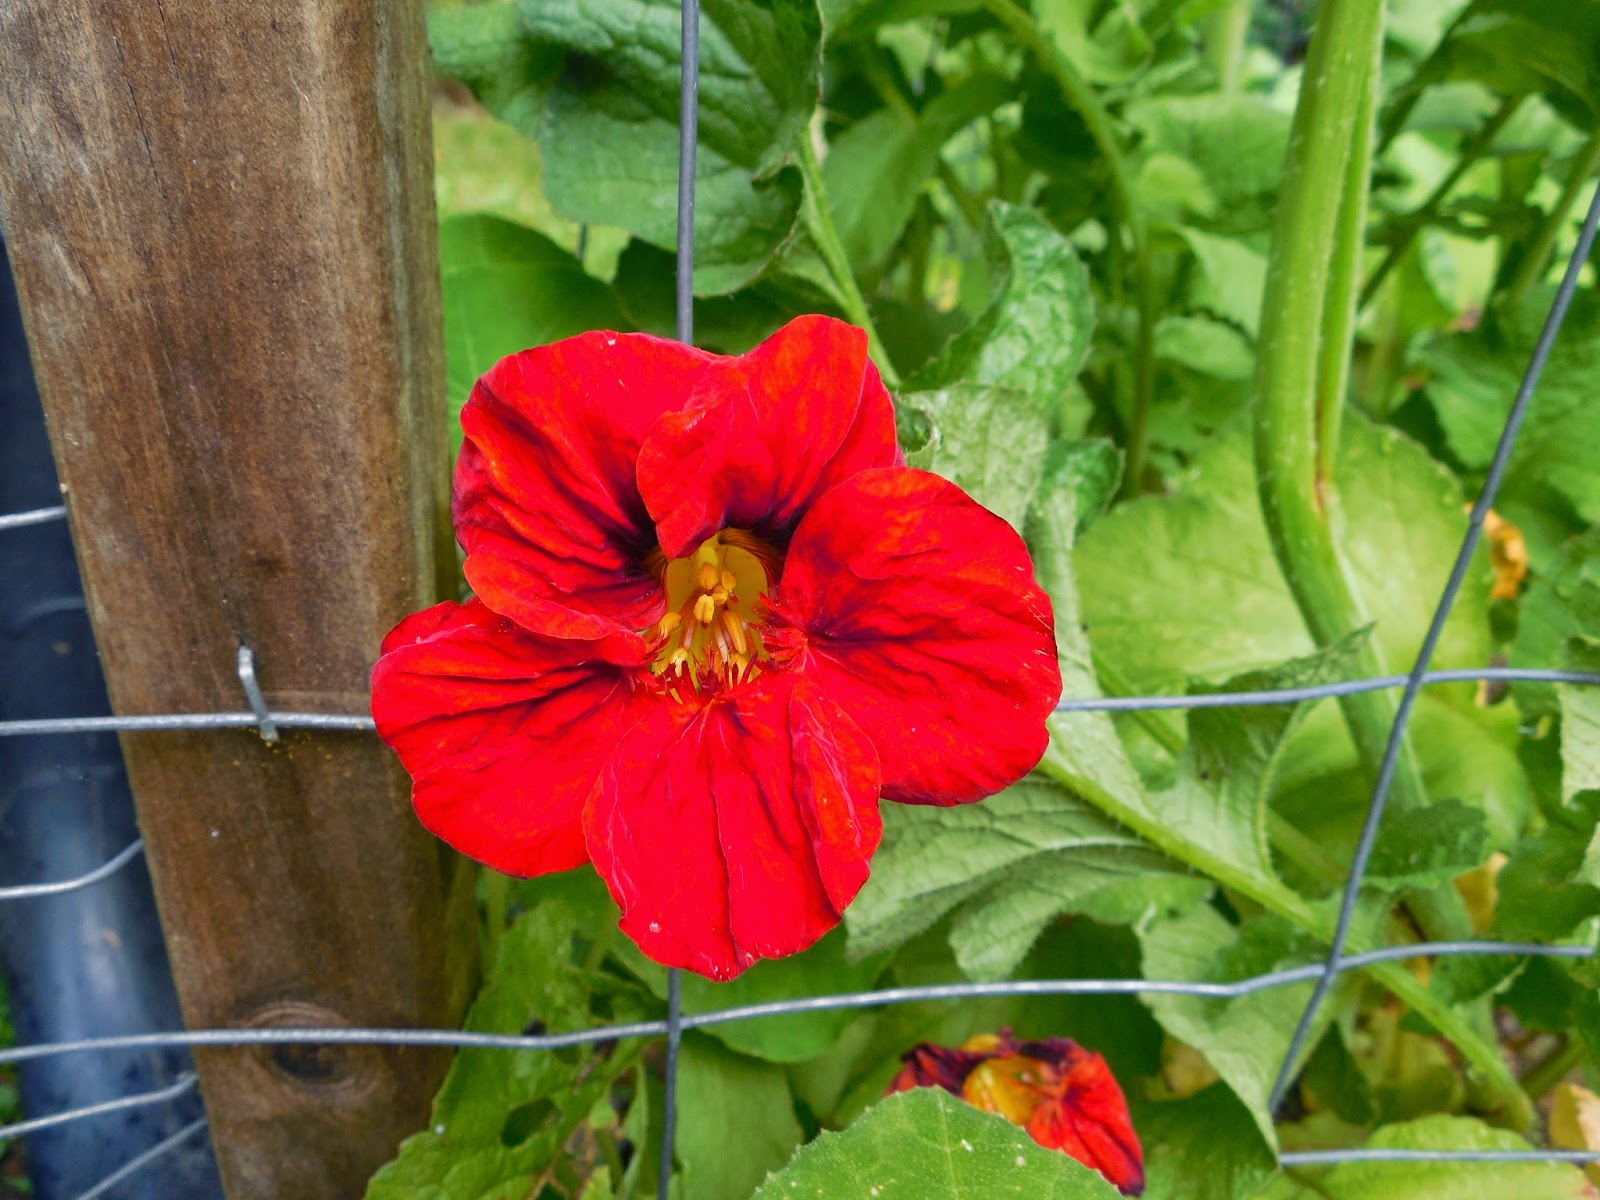 Share it! Science : Grow a Themed Flower Garden with your Children